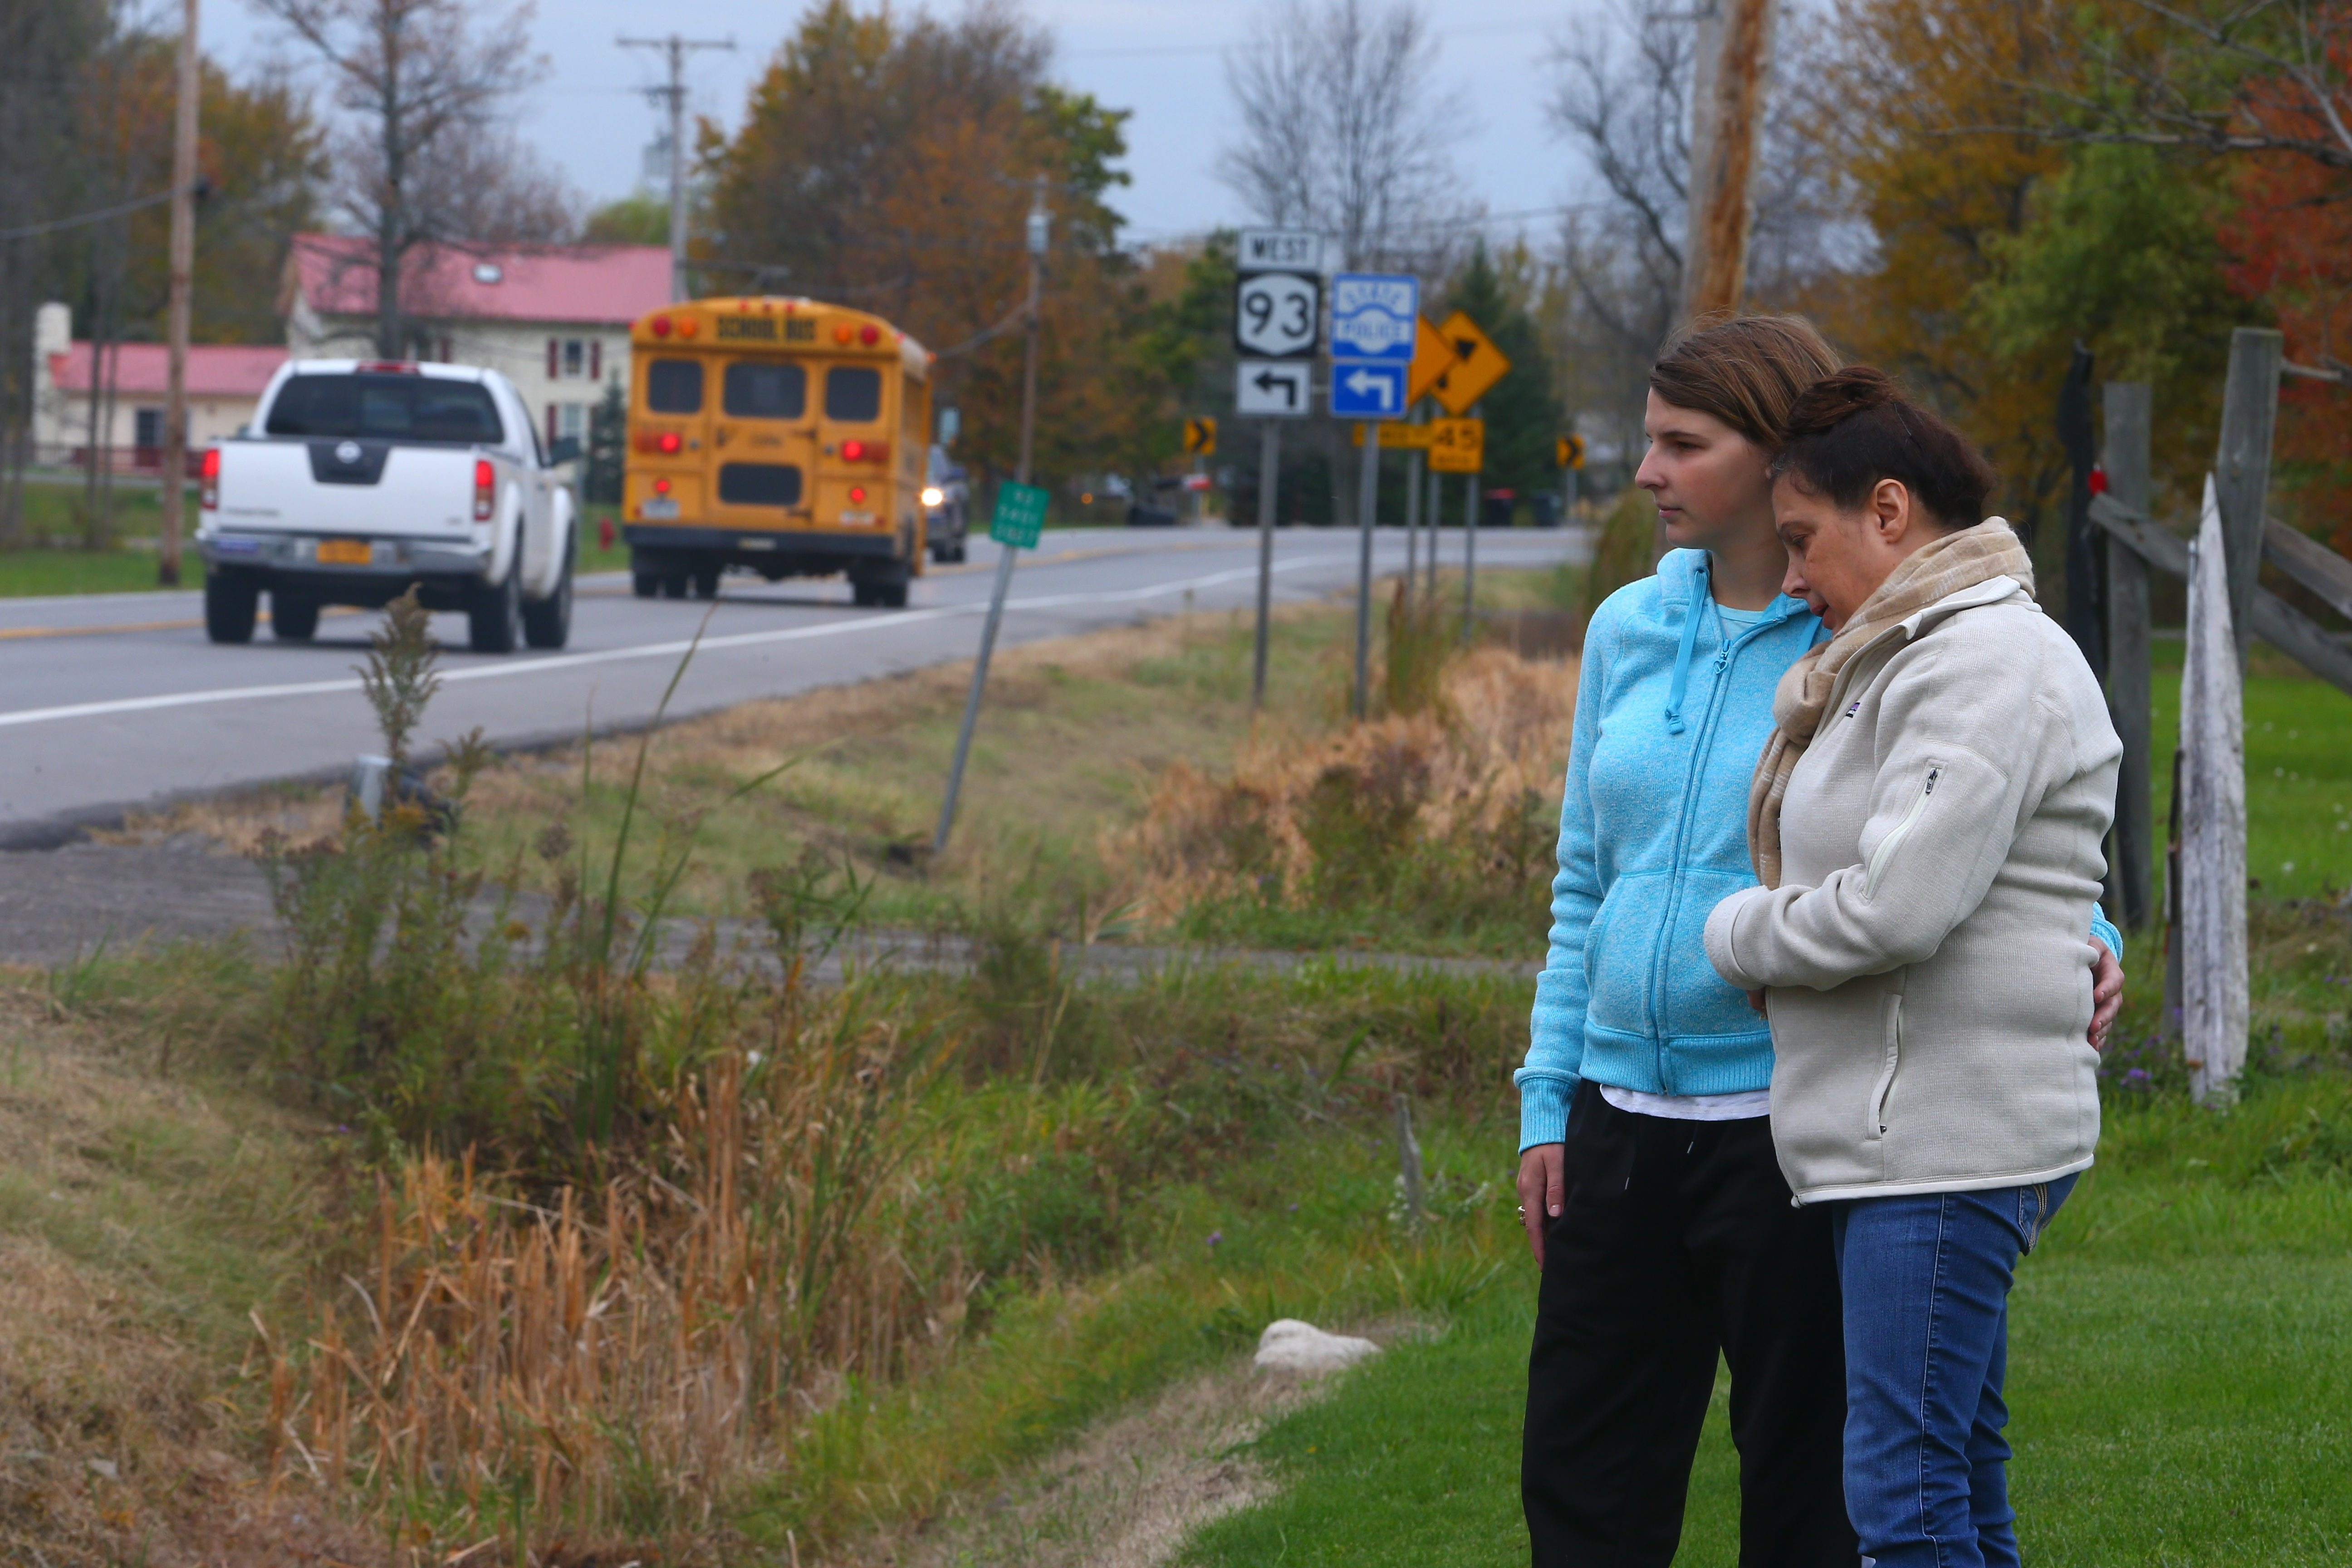 Deborah Strassel, right, the widow of Robert Strassel, with her daughter Brittany, look at Route 93-Akron Road where Robert Strassel was killed Monday when he was hit by a car while cleaning up the remains of his dead dog, who had just been hit by another car in front of their home. (John Hickey/Buffalo News)